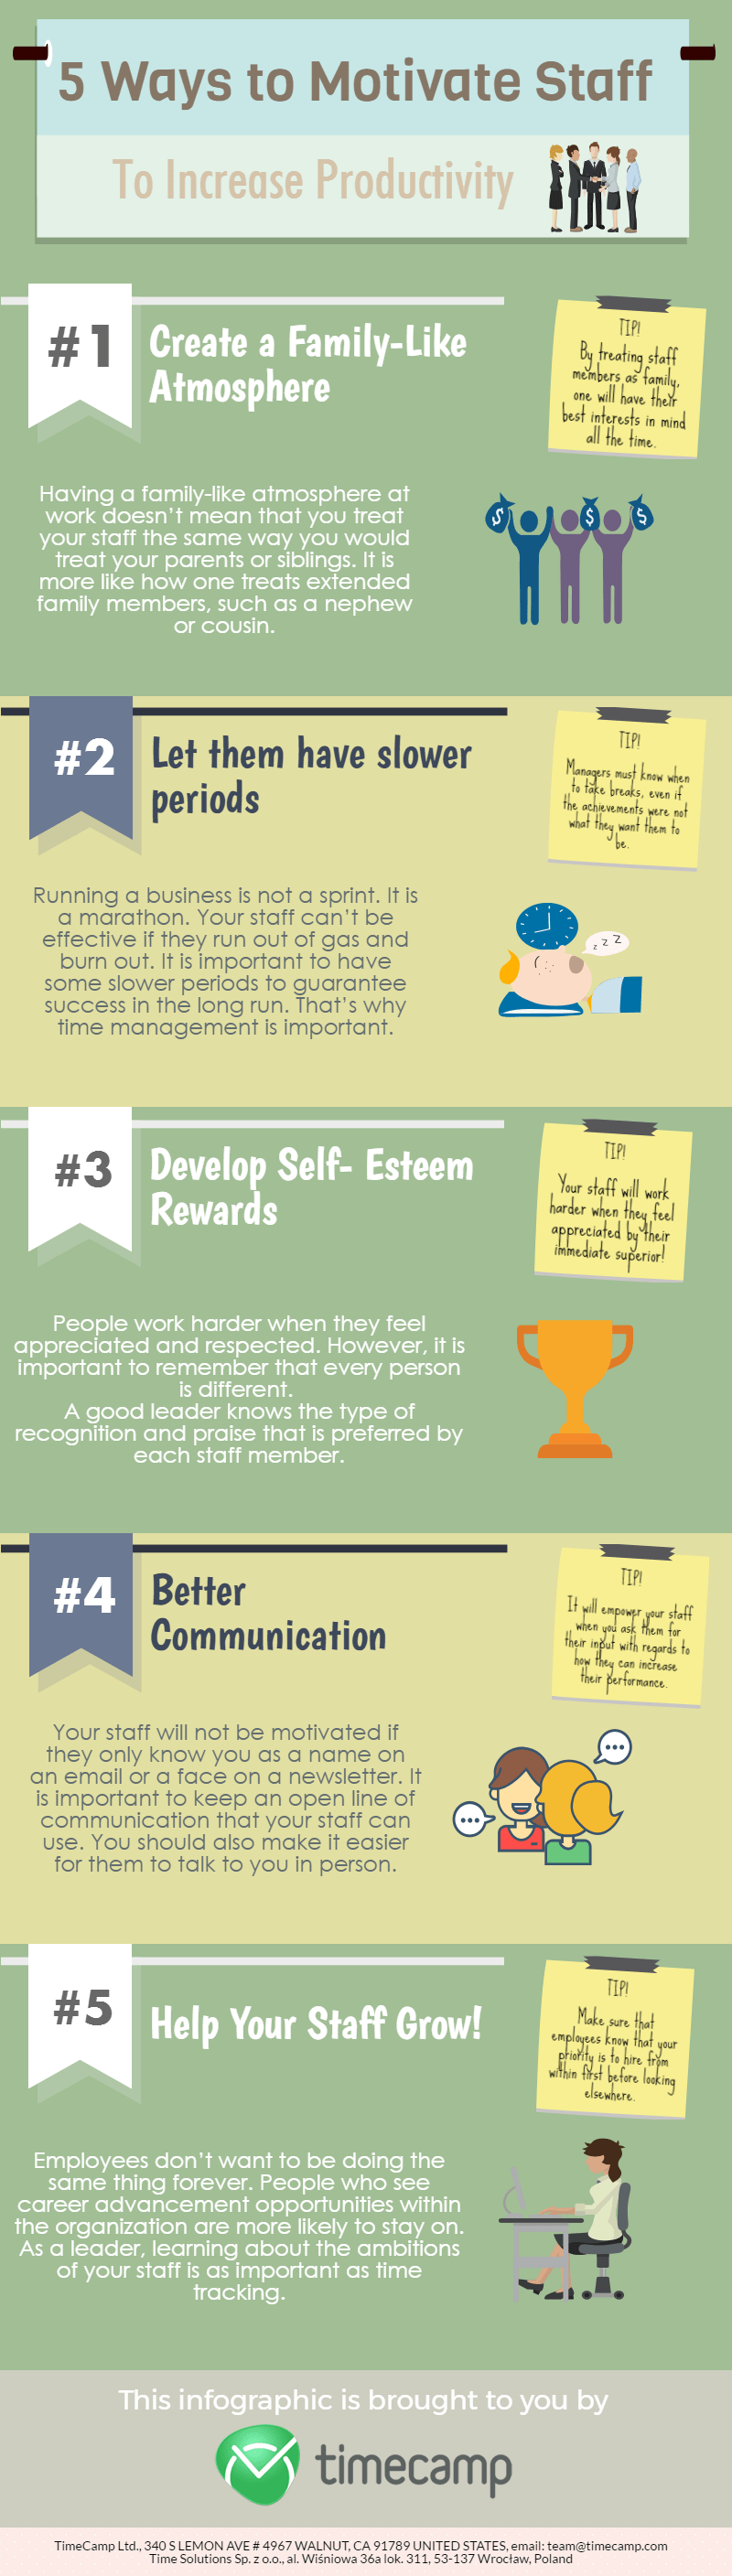 5 ways to motivate staff